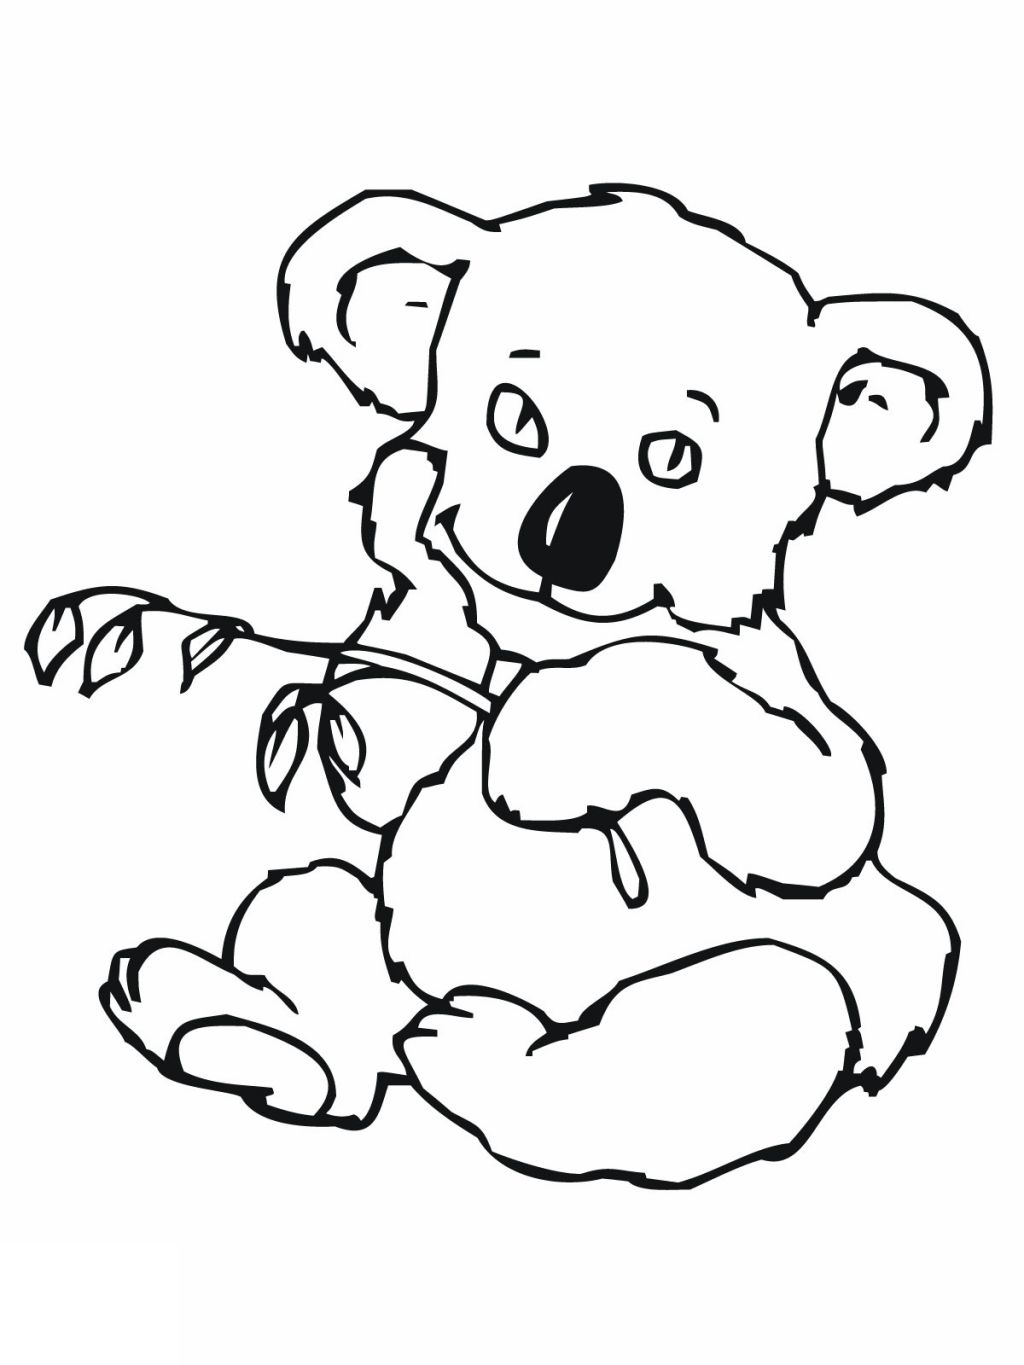 Cute Koala Drawing At Getdrawings Com Free For Personal Use Cute